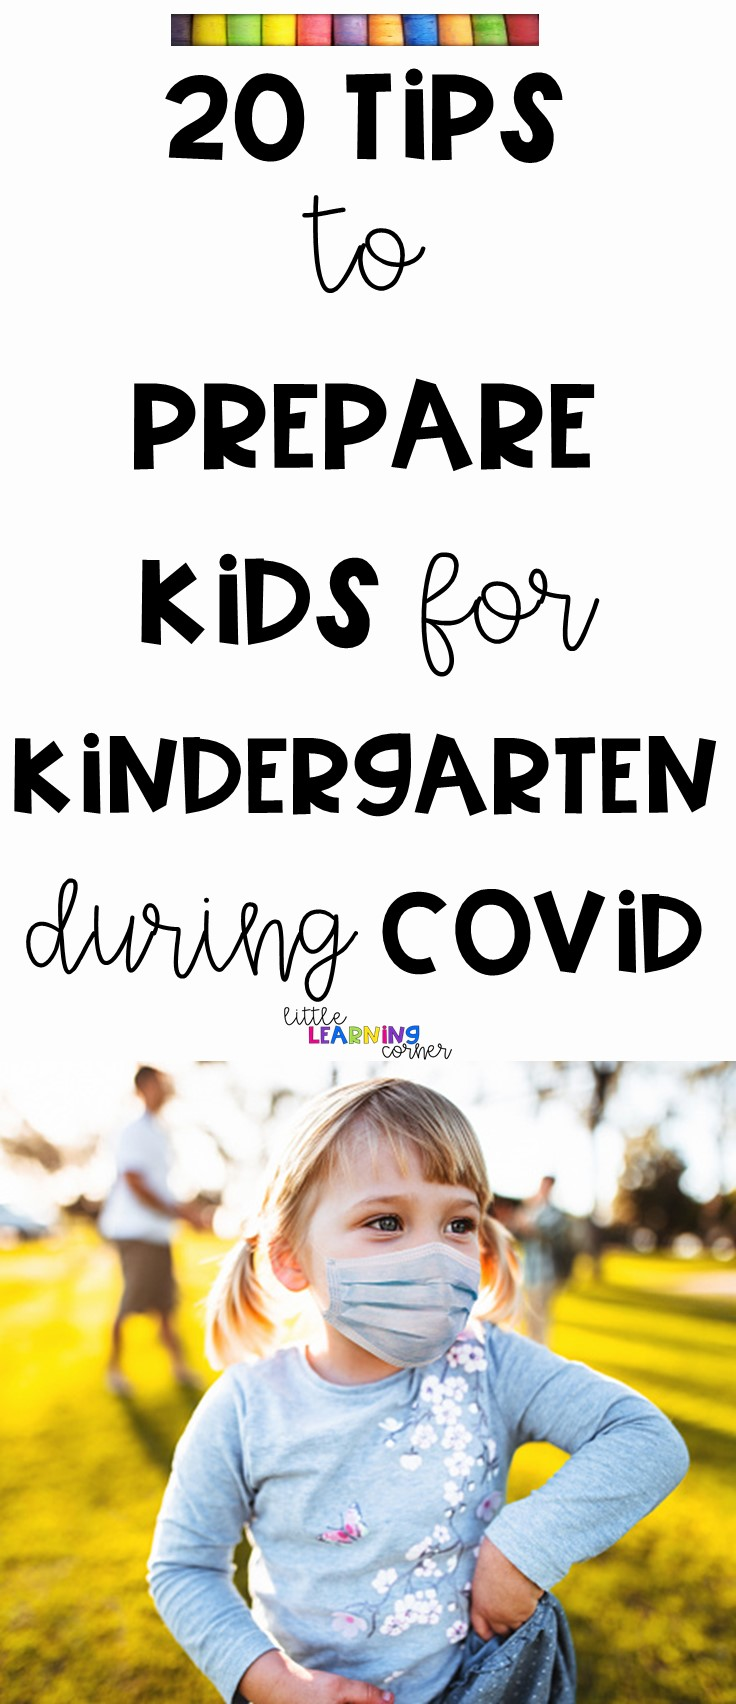 kindergarten-during-covid-pin